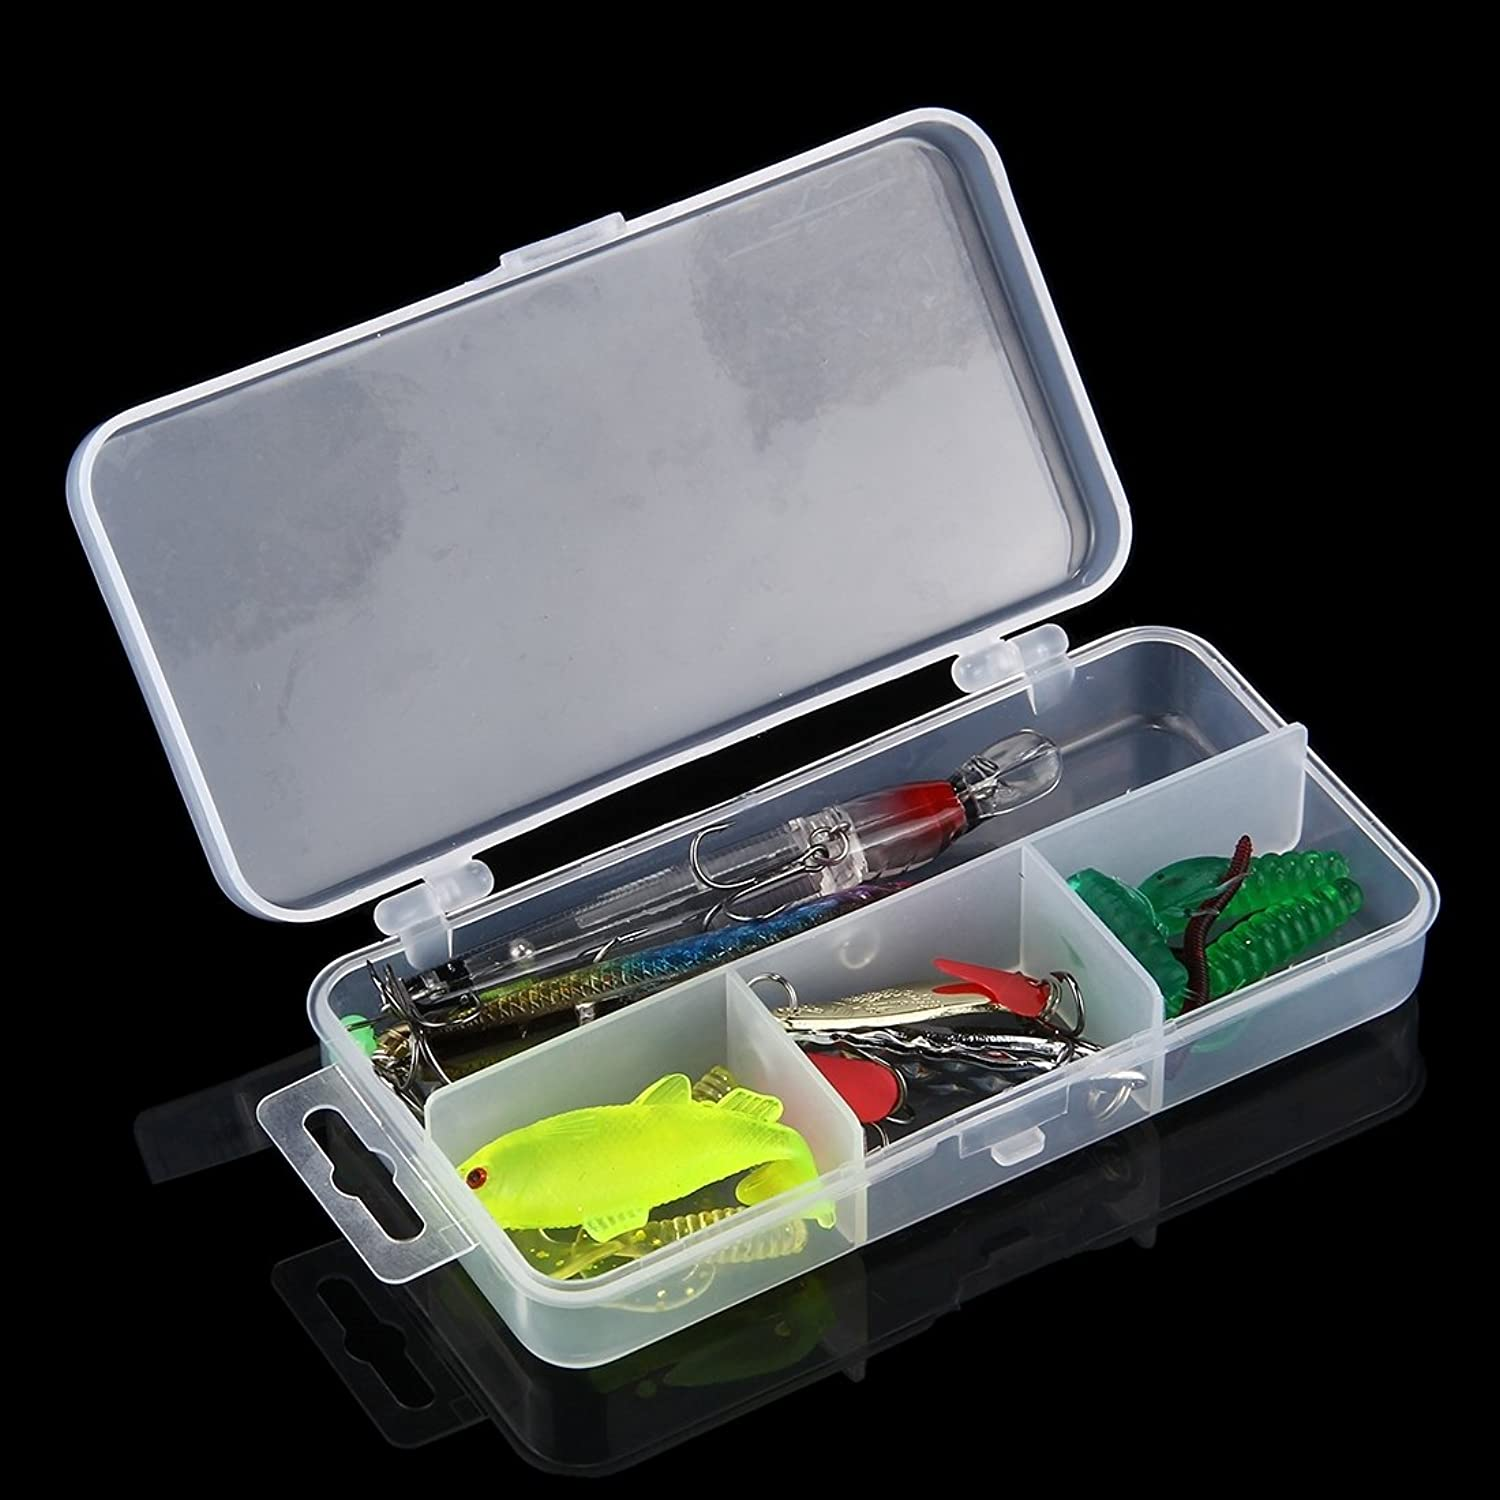 Tool 23 in 1 Fishing Lure Set with 2 Hard Bait & 3 Sequins Lures & 11 Soft Lures & 2 Hooks & 1 Fishing Sinker & 2 Ring Pins &2 Luminous Beads Outdoor